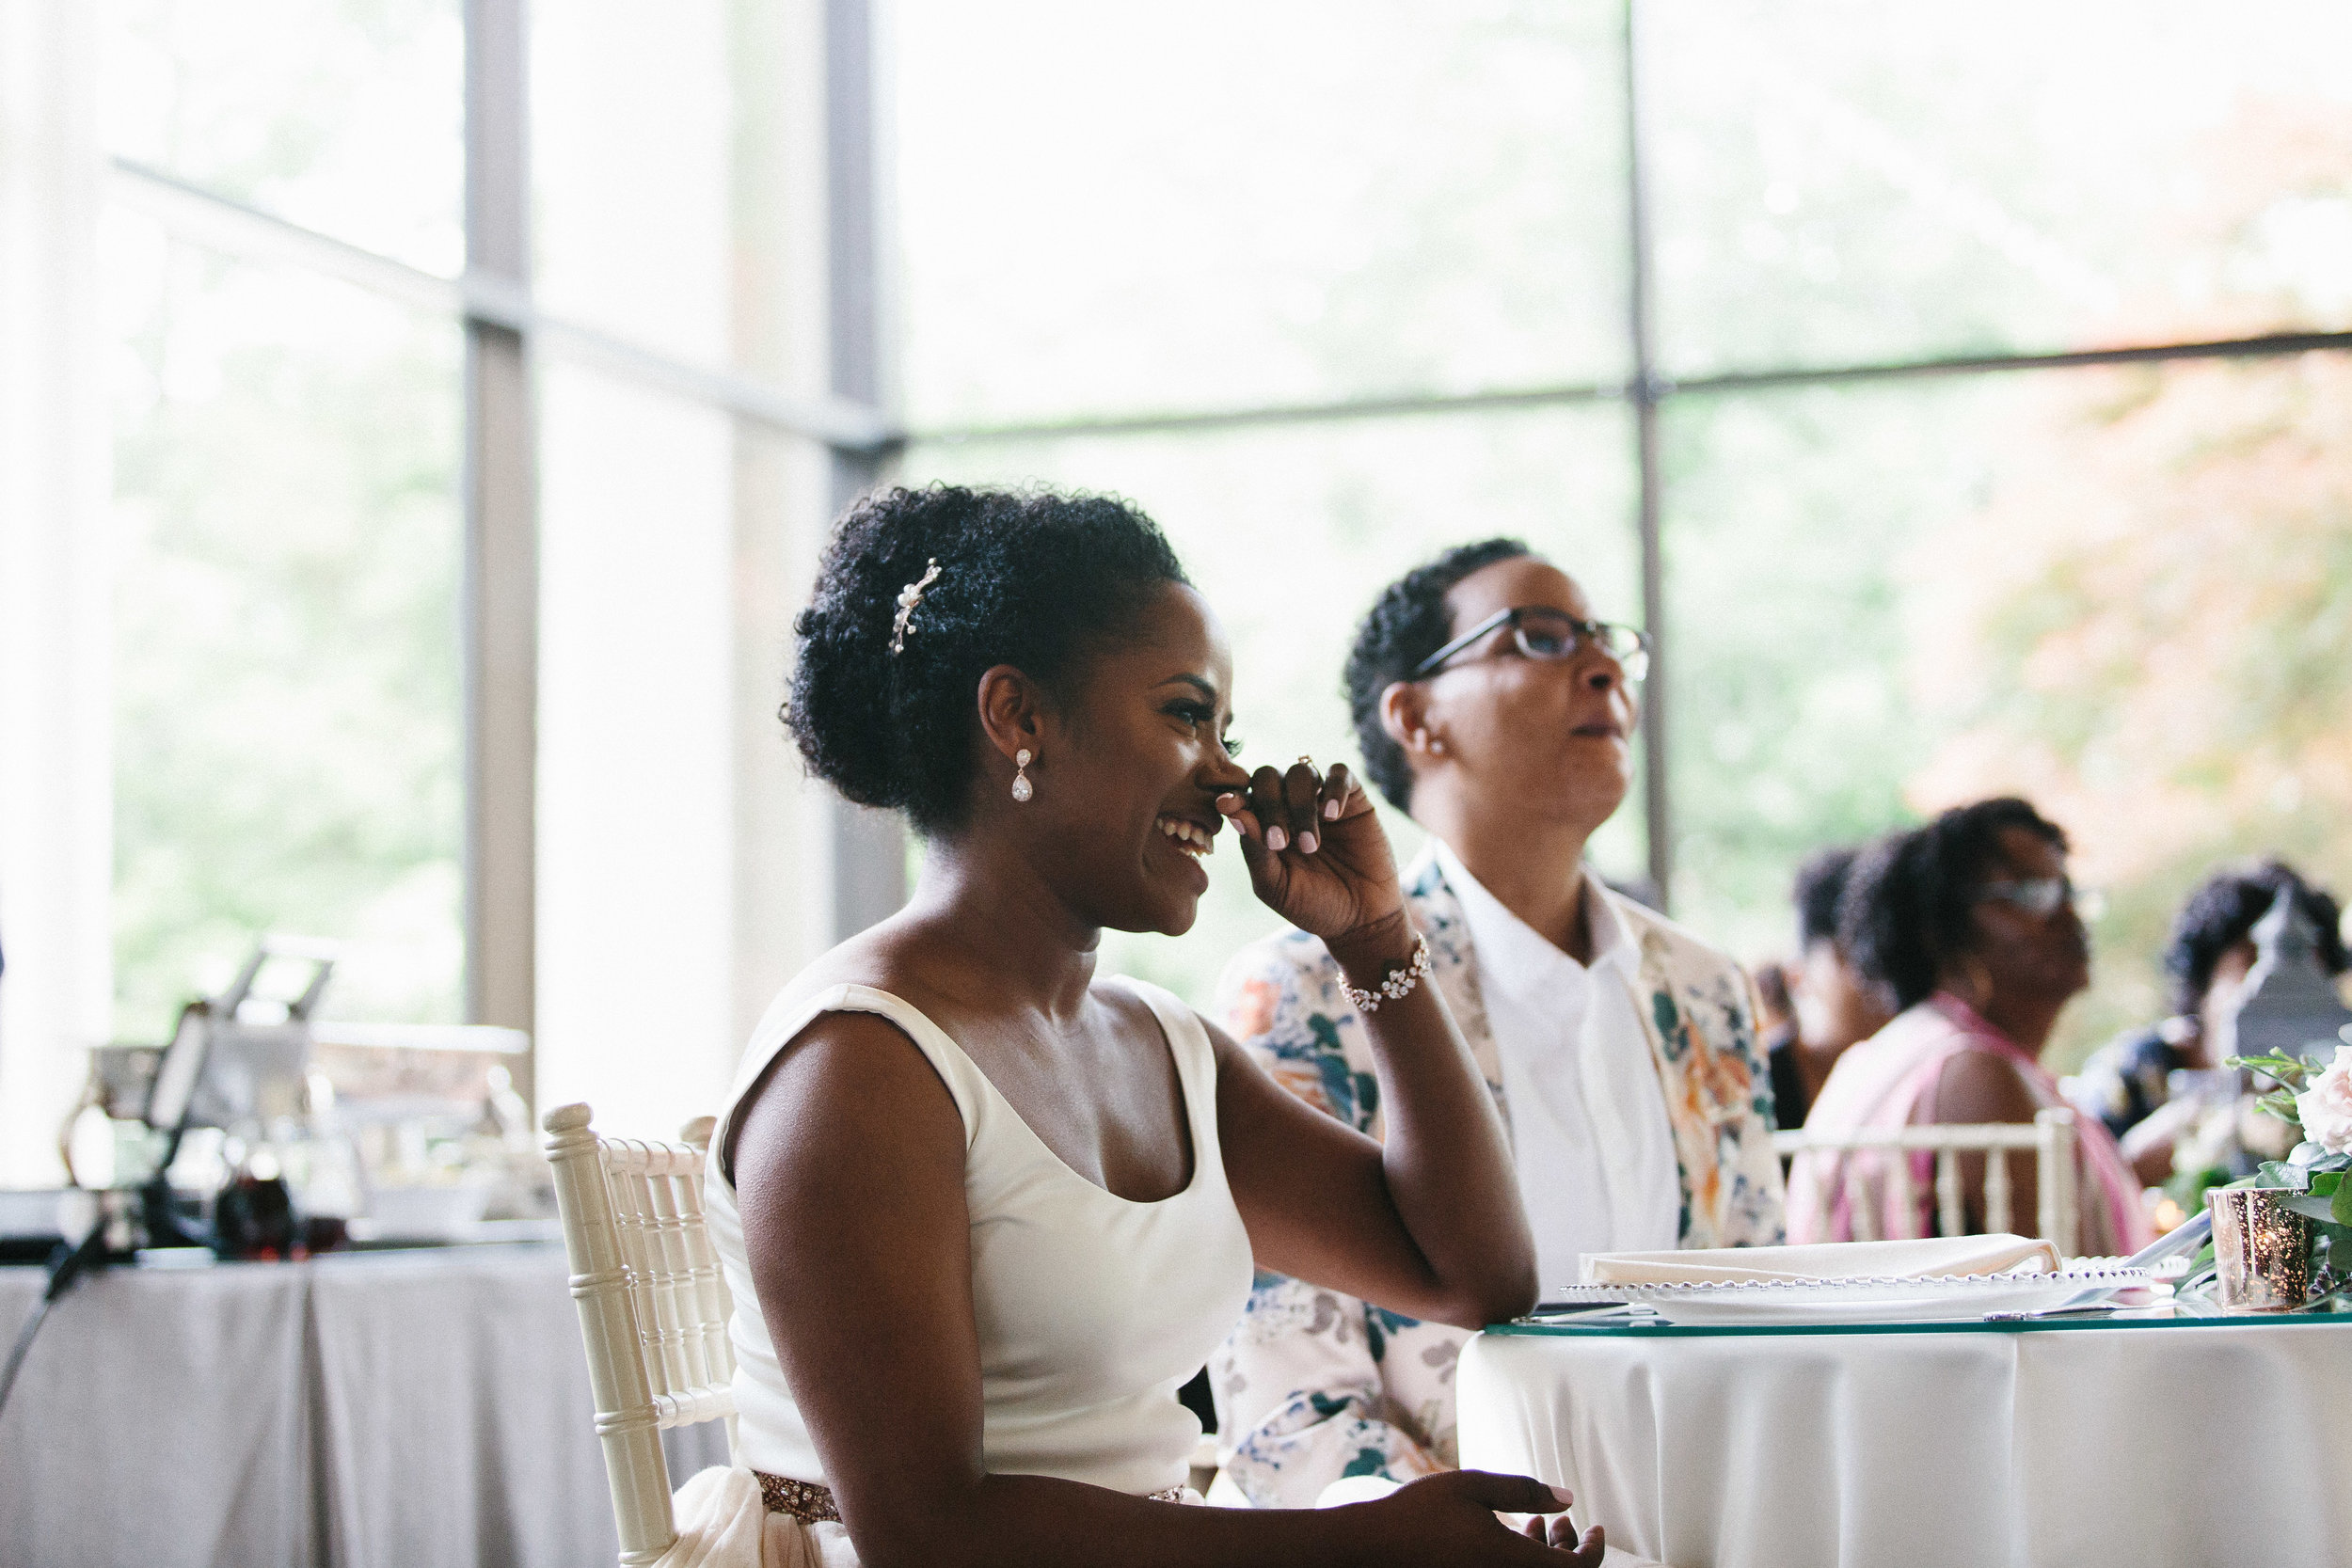 the_atrium_wedding_atlanta_norcross_lifestyle_photographers_lgbtq_1364.jpg